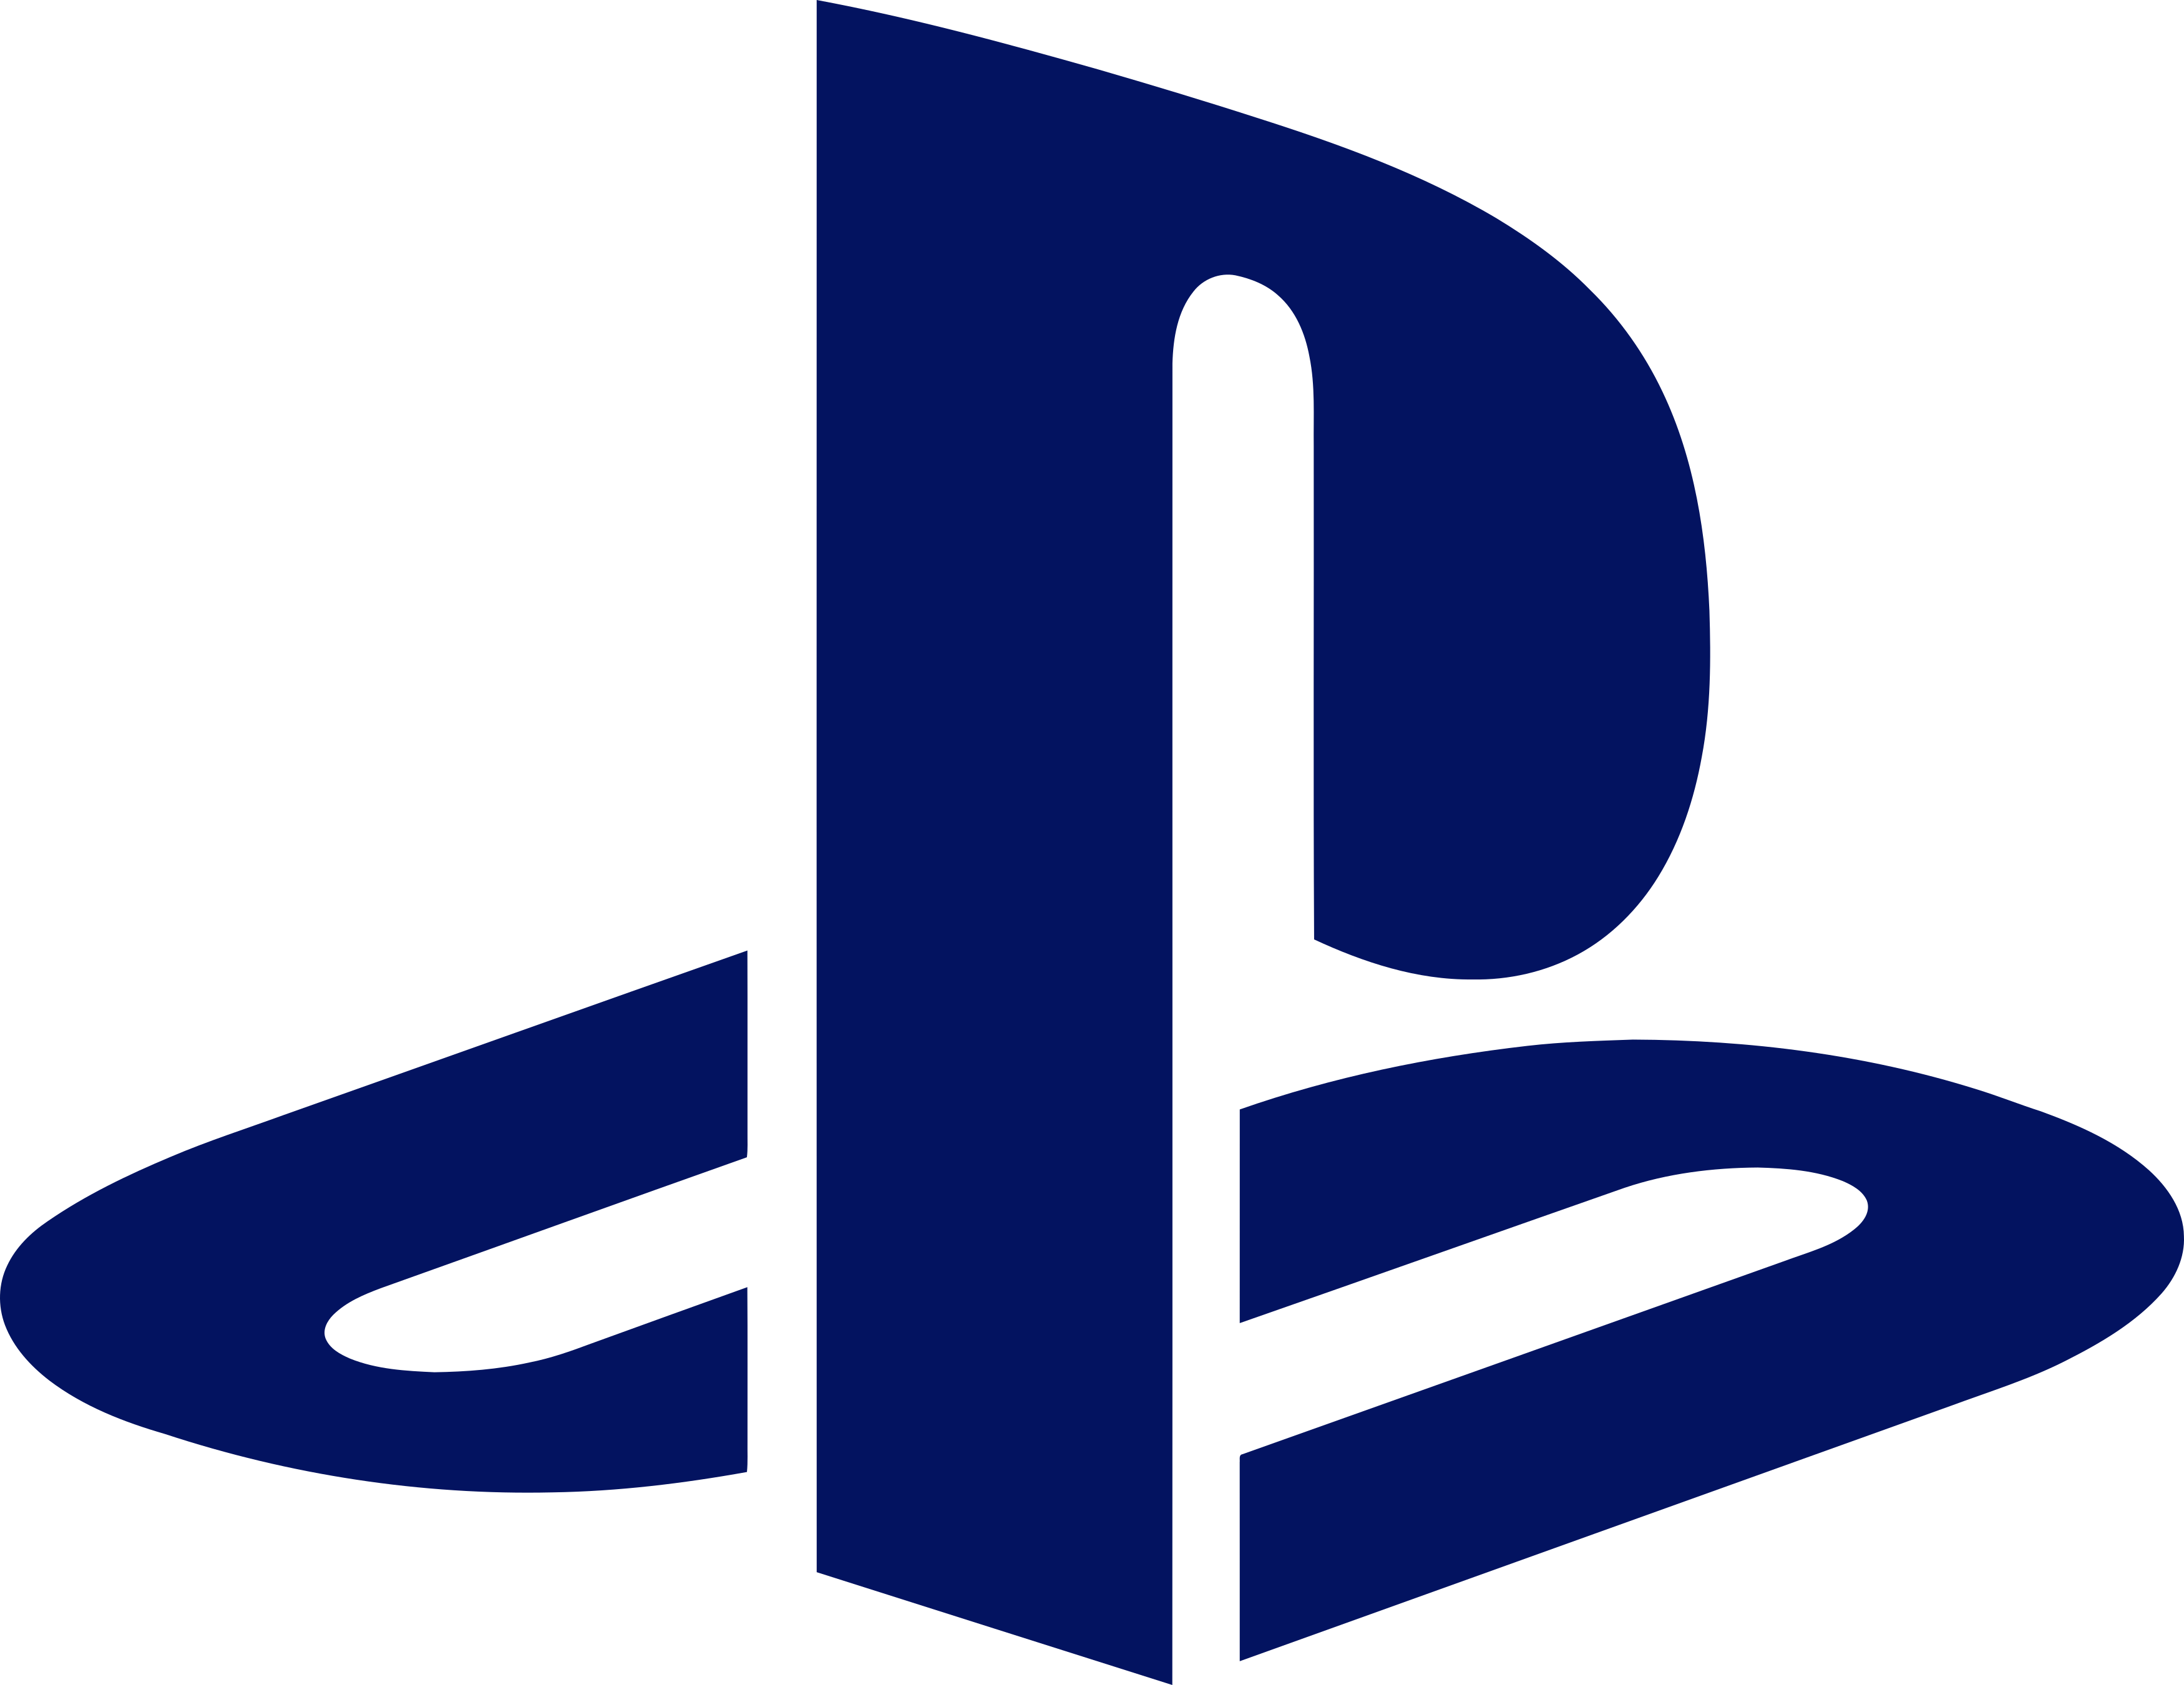 PlayStation 4 Logo – PS4 Logo - Logodownload.org Download ...